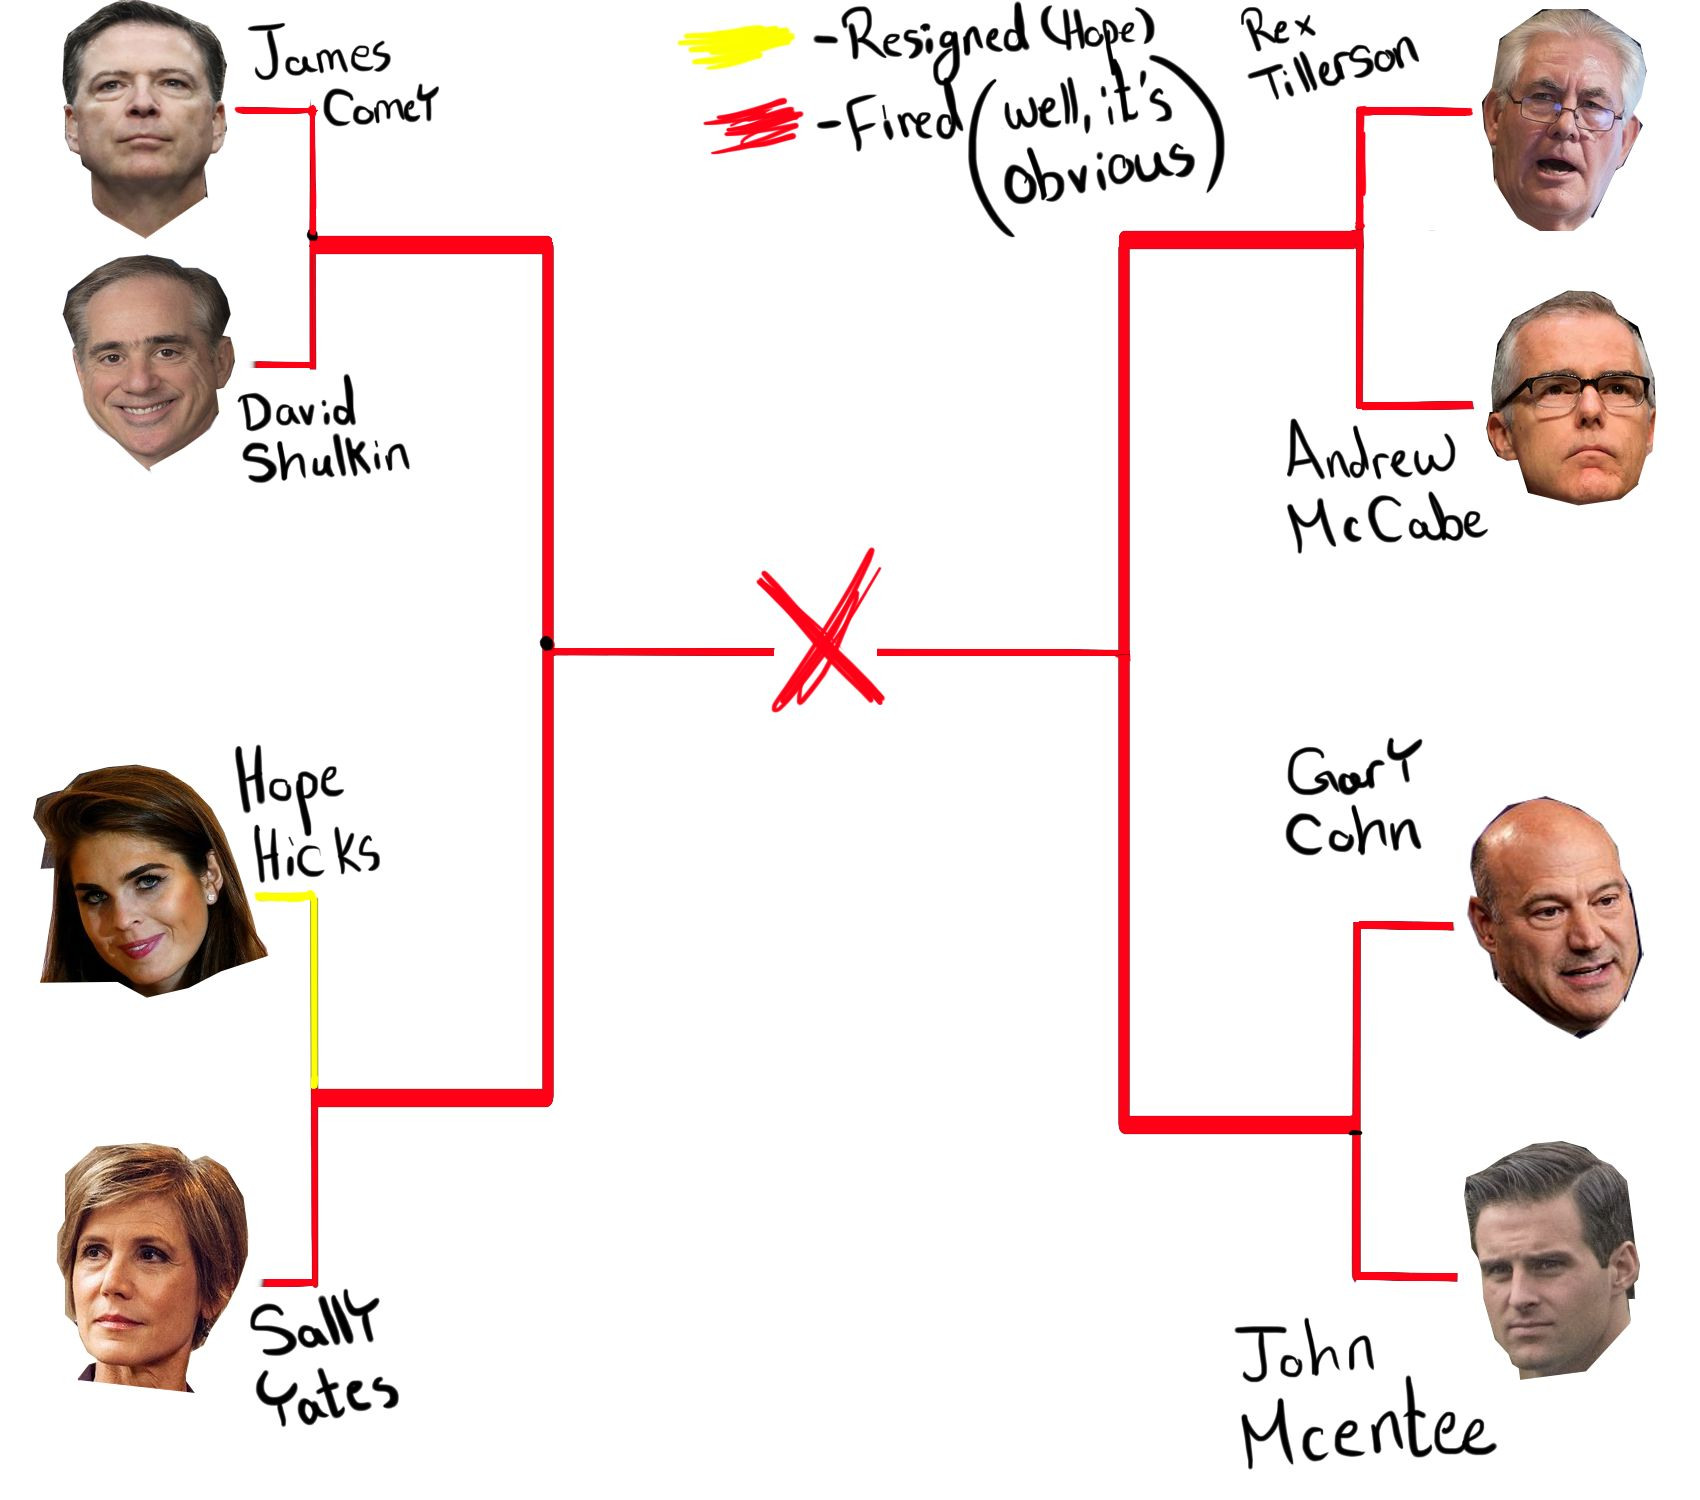 Brackets made to look like the NCAA basketball tournament brackets with heads of people who have been fired or left the Trump administration.